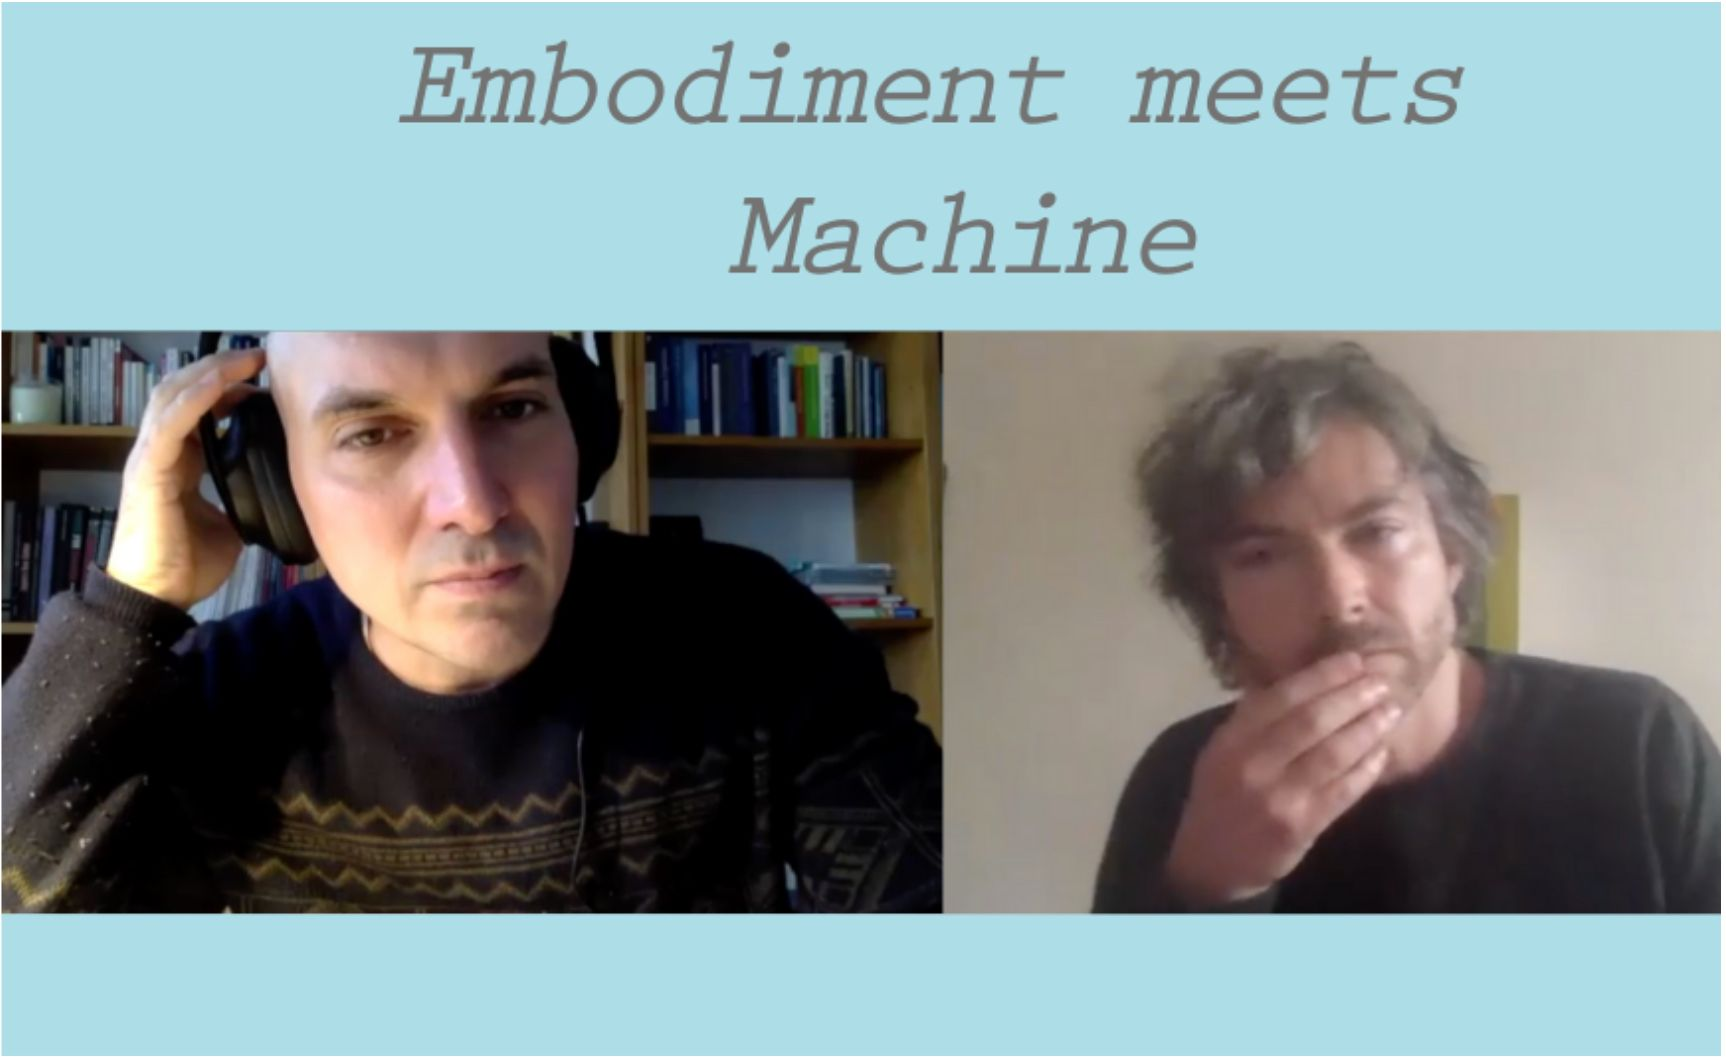 Embodiment Meets Machine | Now available on Vimeo